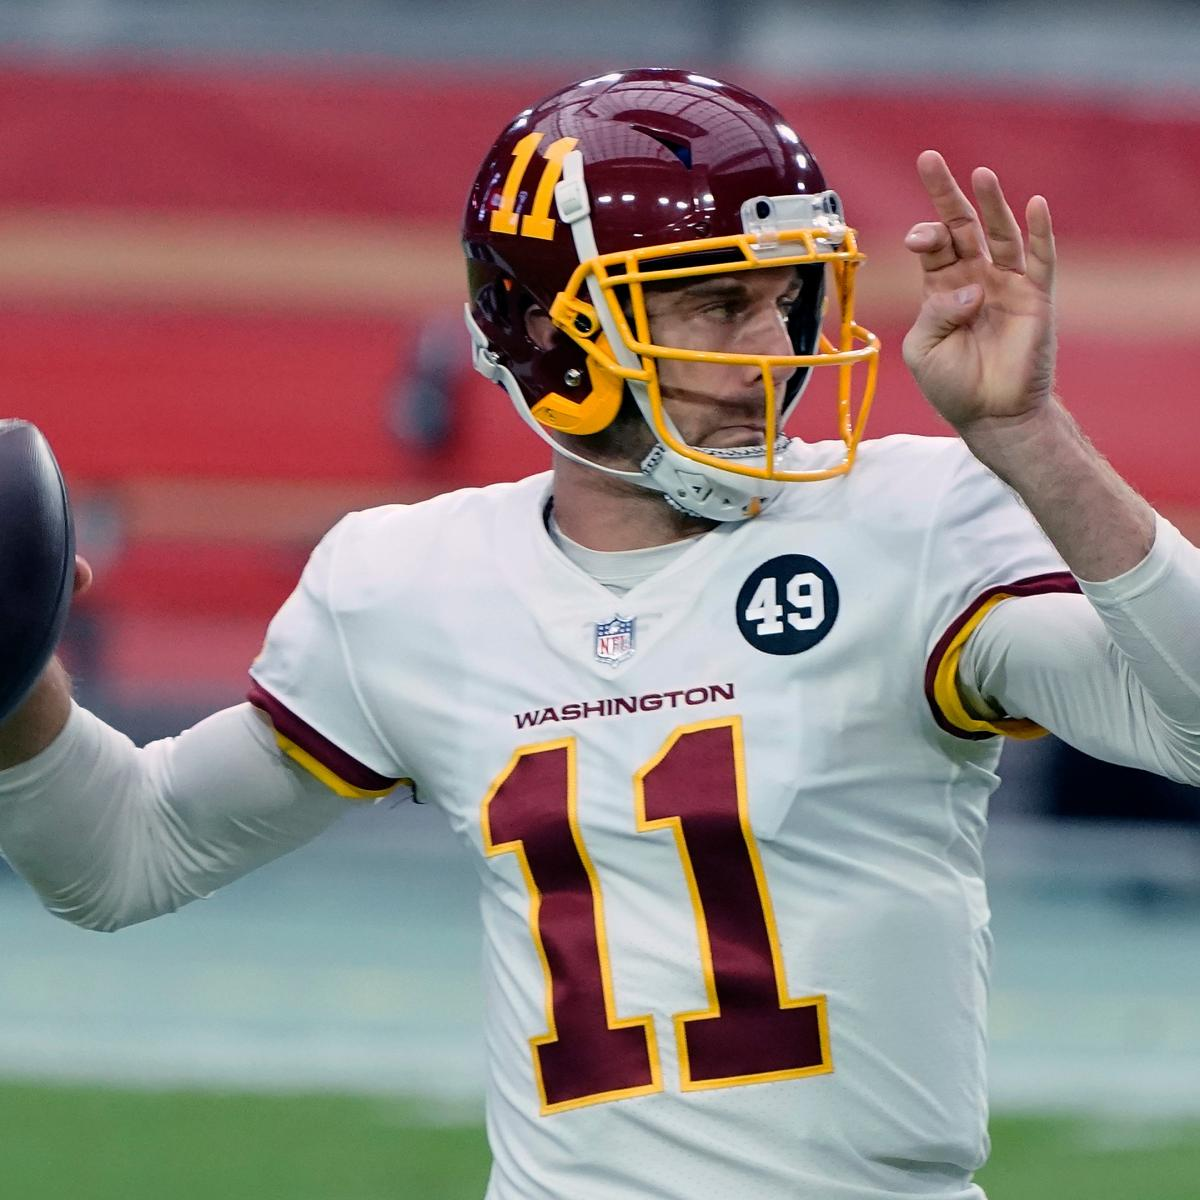 Alex Smith, cleared by his own docs for full activity